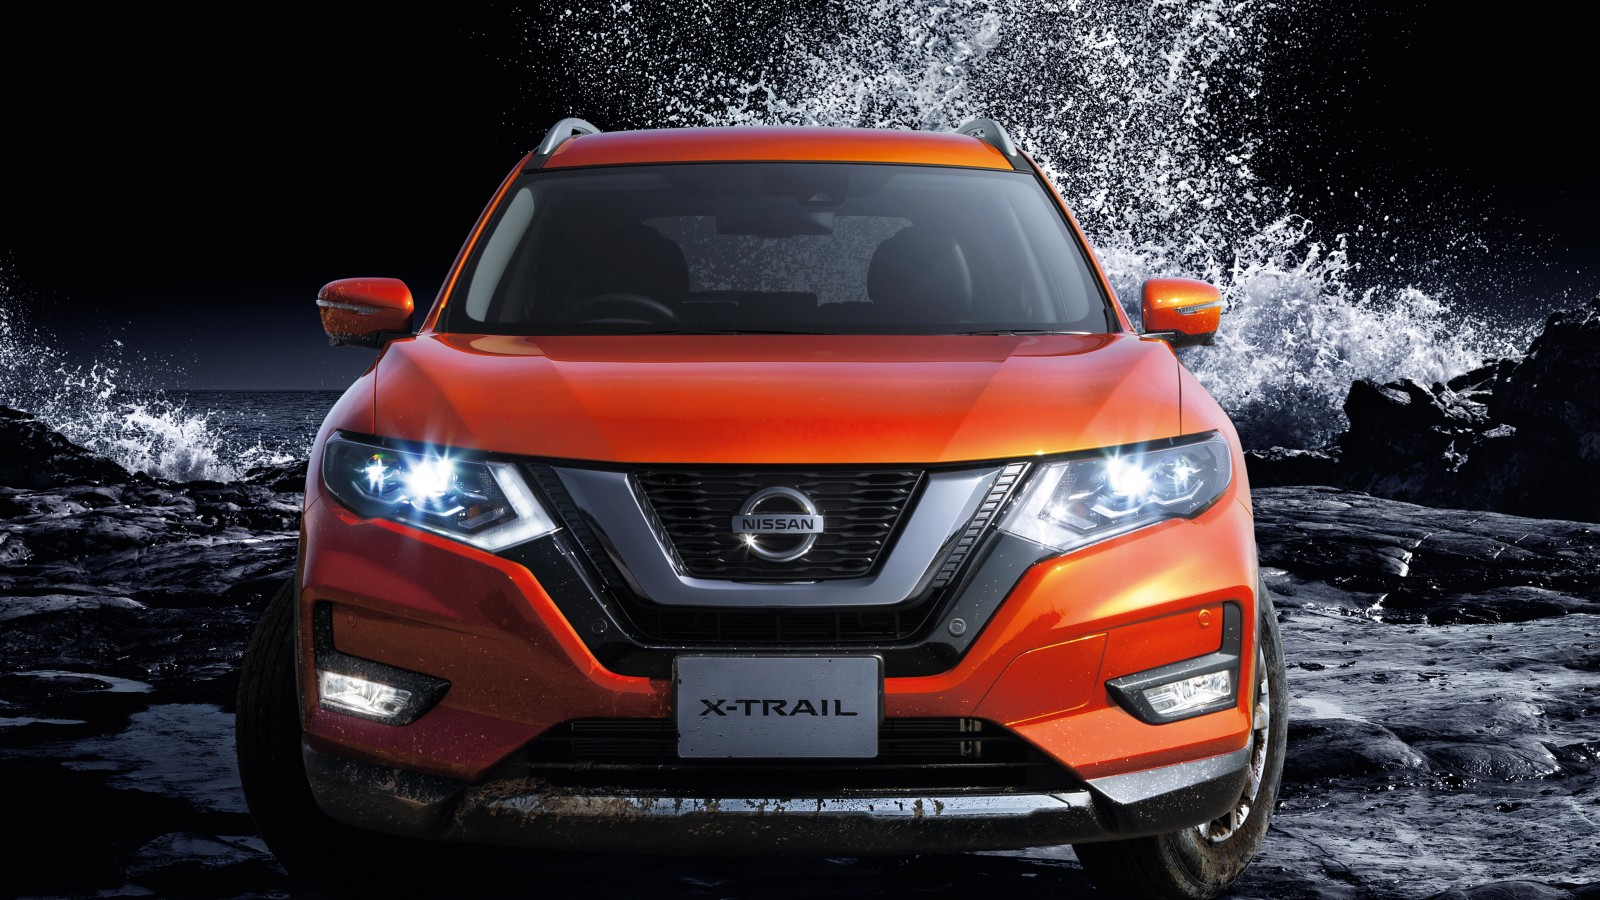 nissan x trail hybrid 2017 4k wallpaper hd car wallpapers id 7832. Black Bedroom Furniture Sets. Home Design Ideas